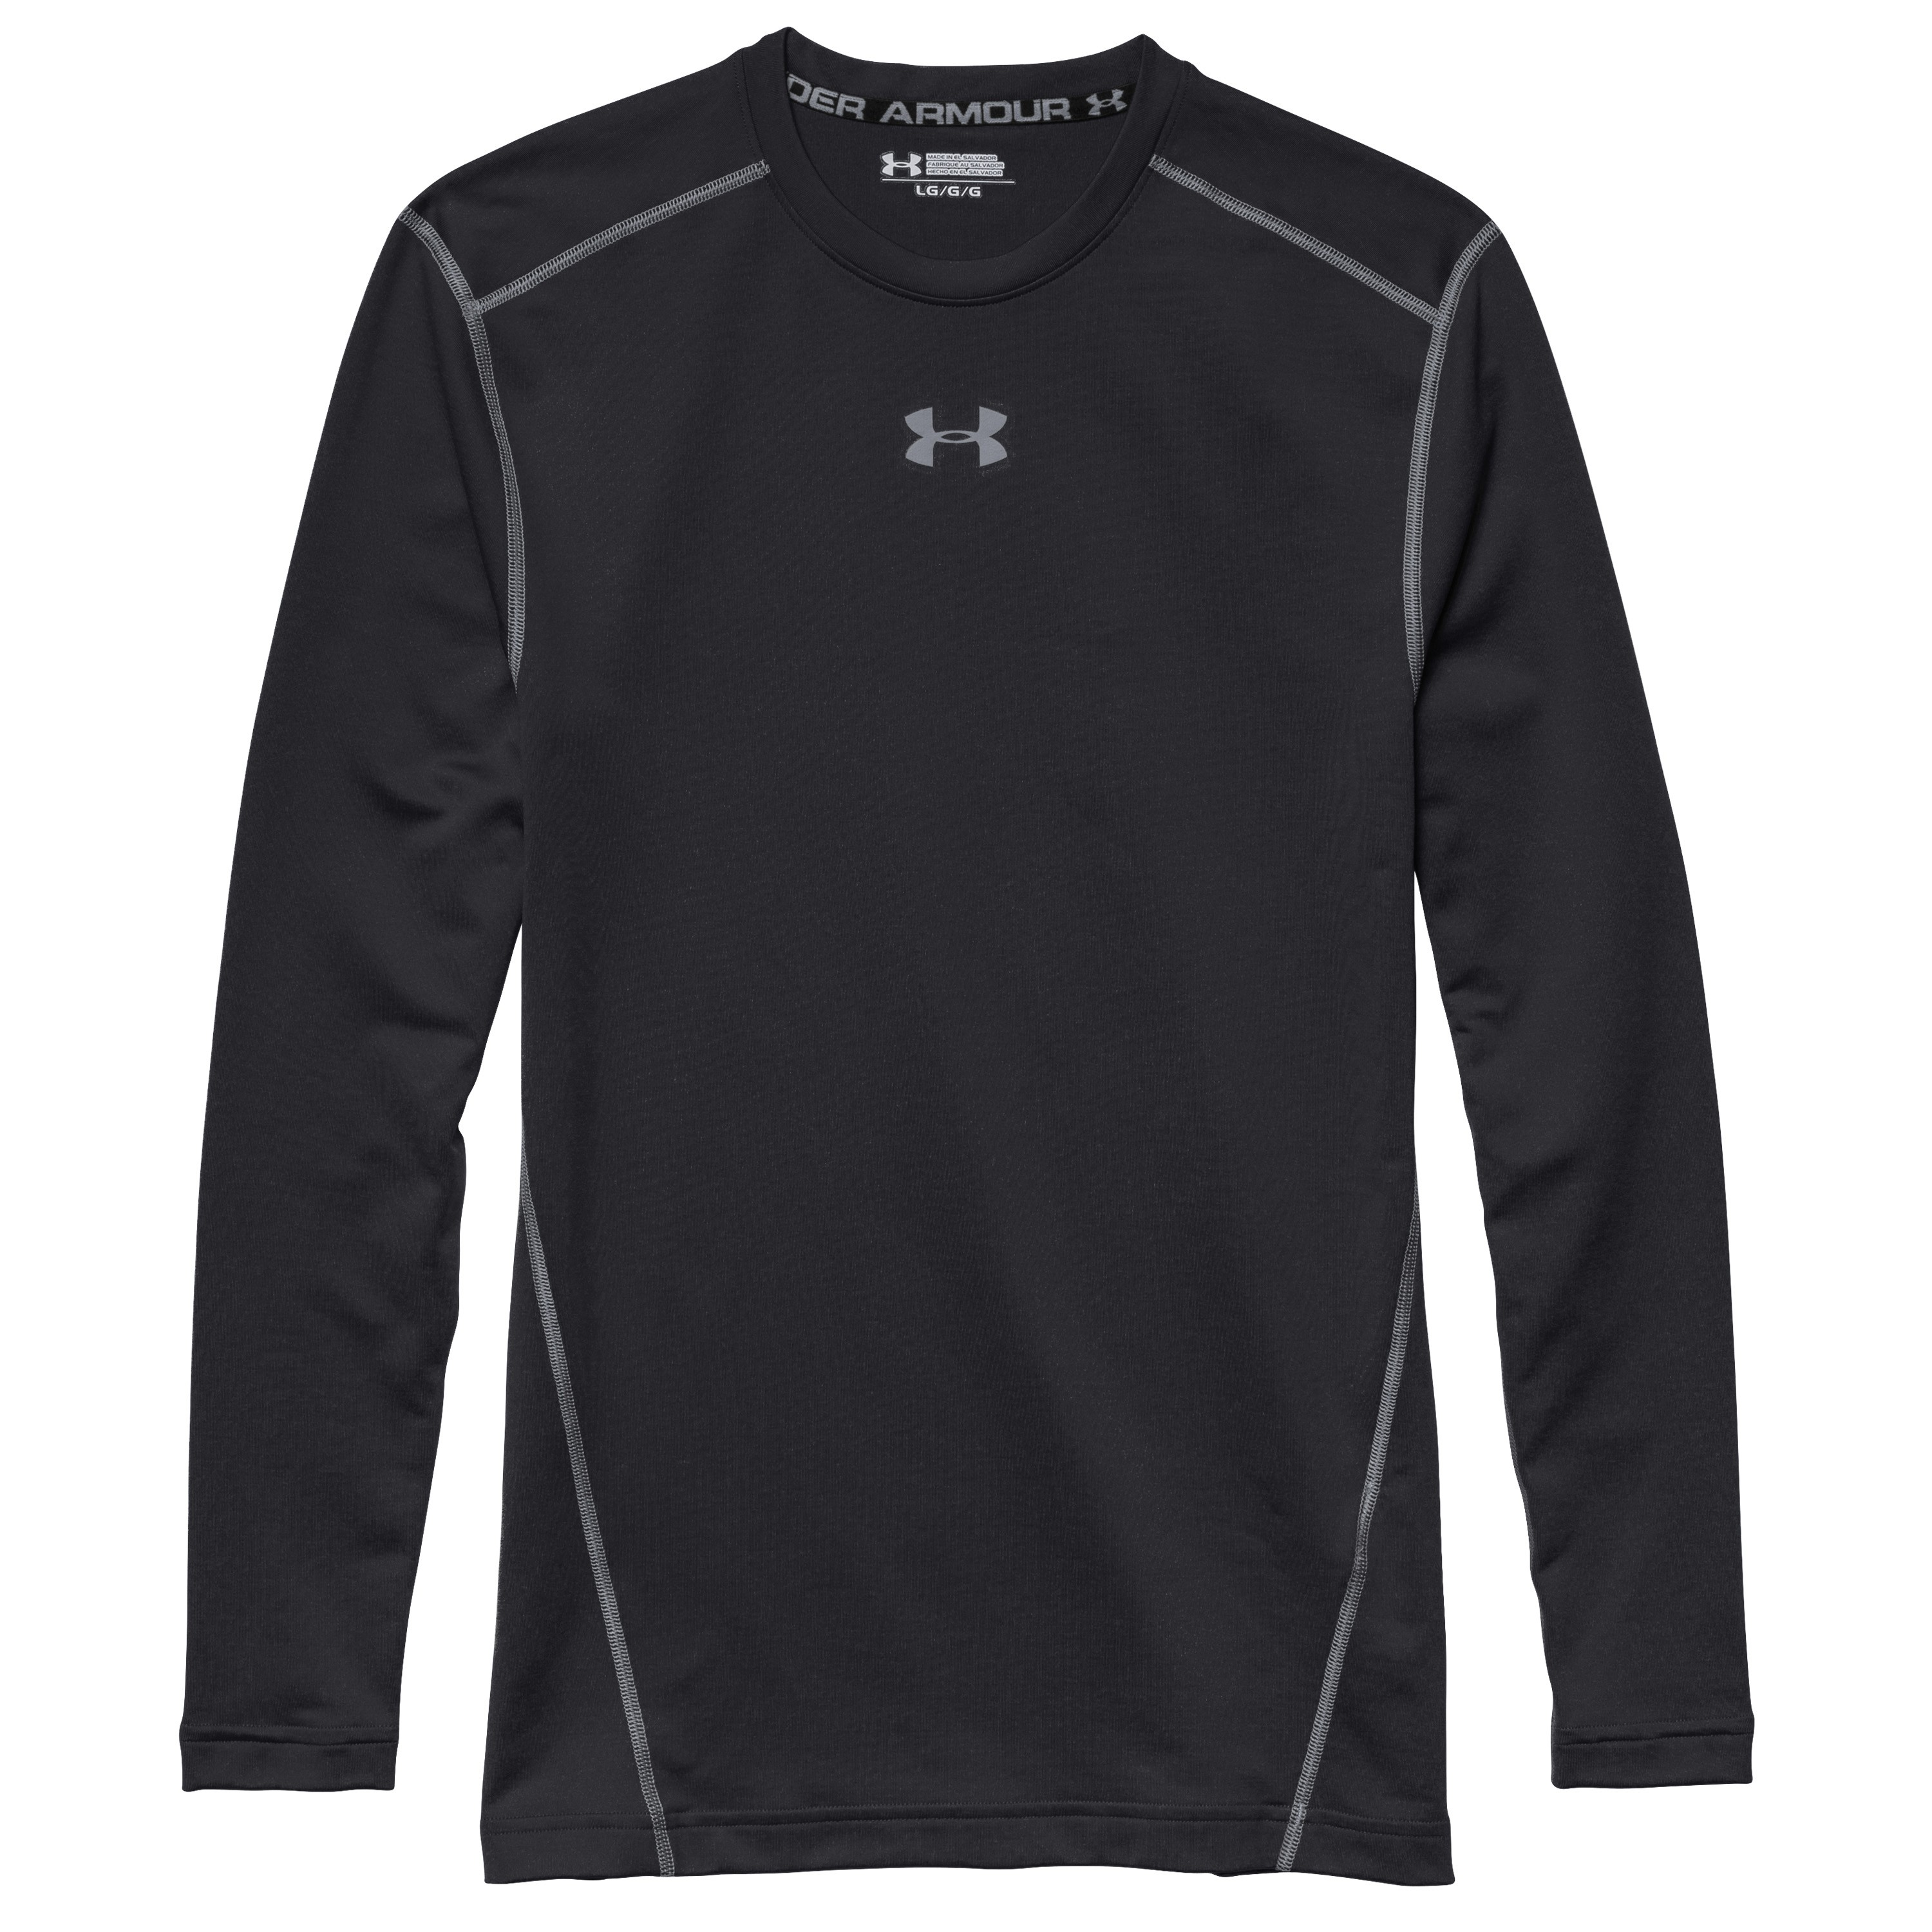 Under Armour Langarmshirt CG ARMOUR Crew schwarz